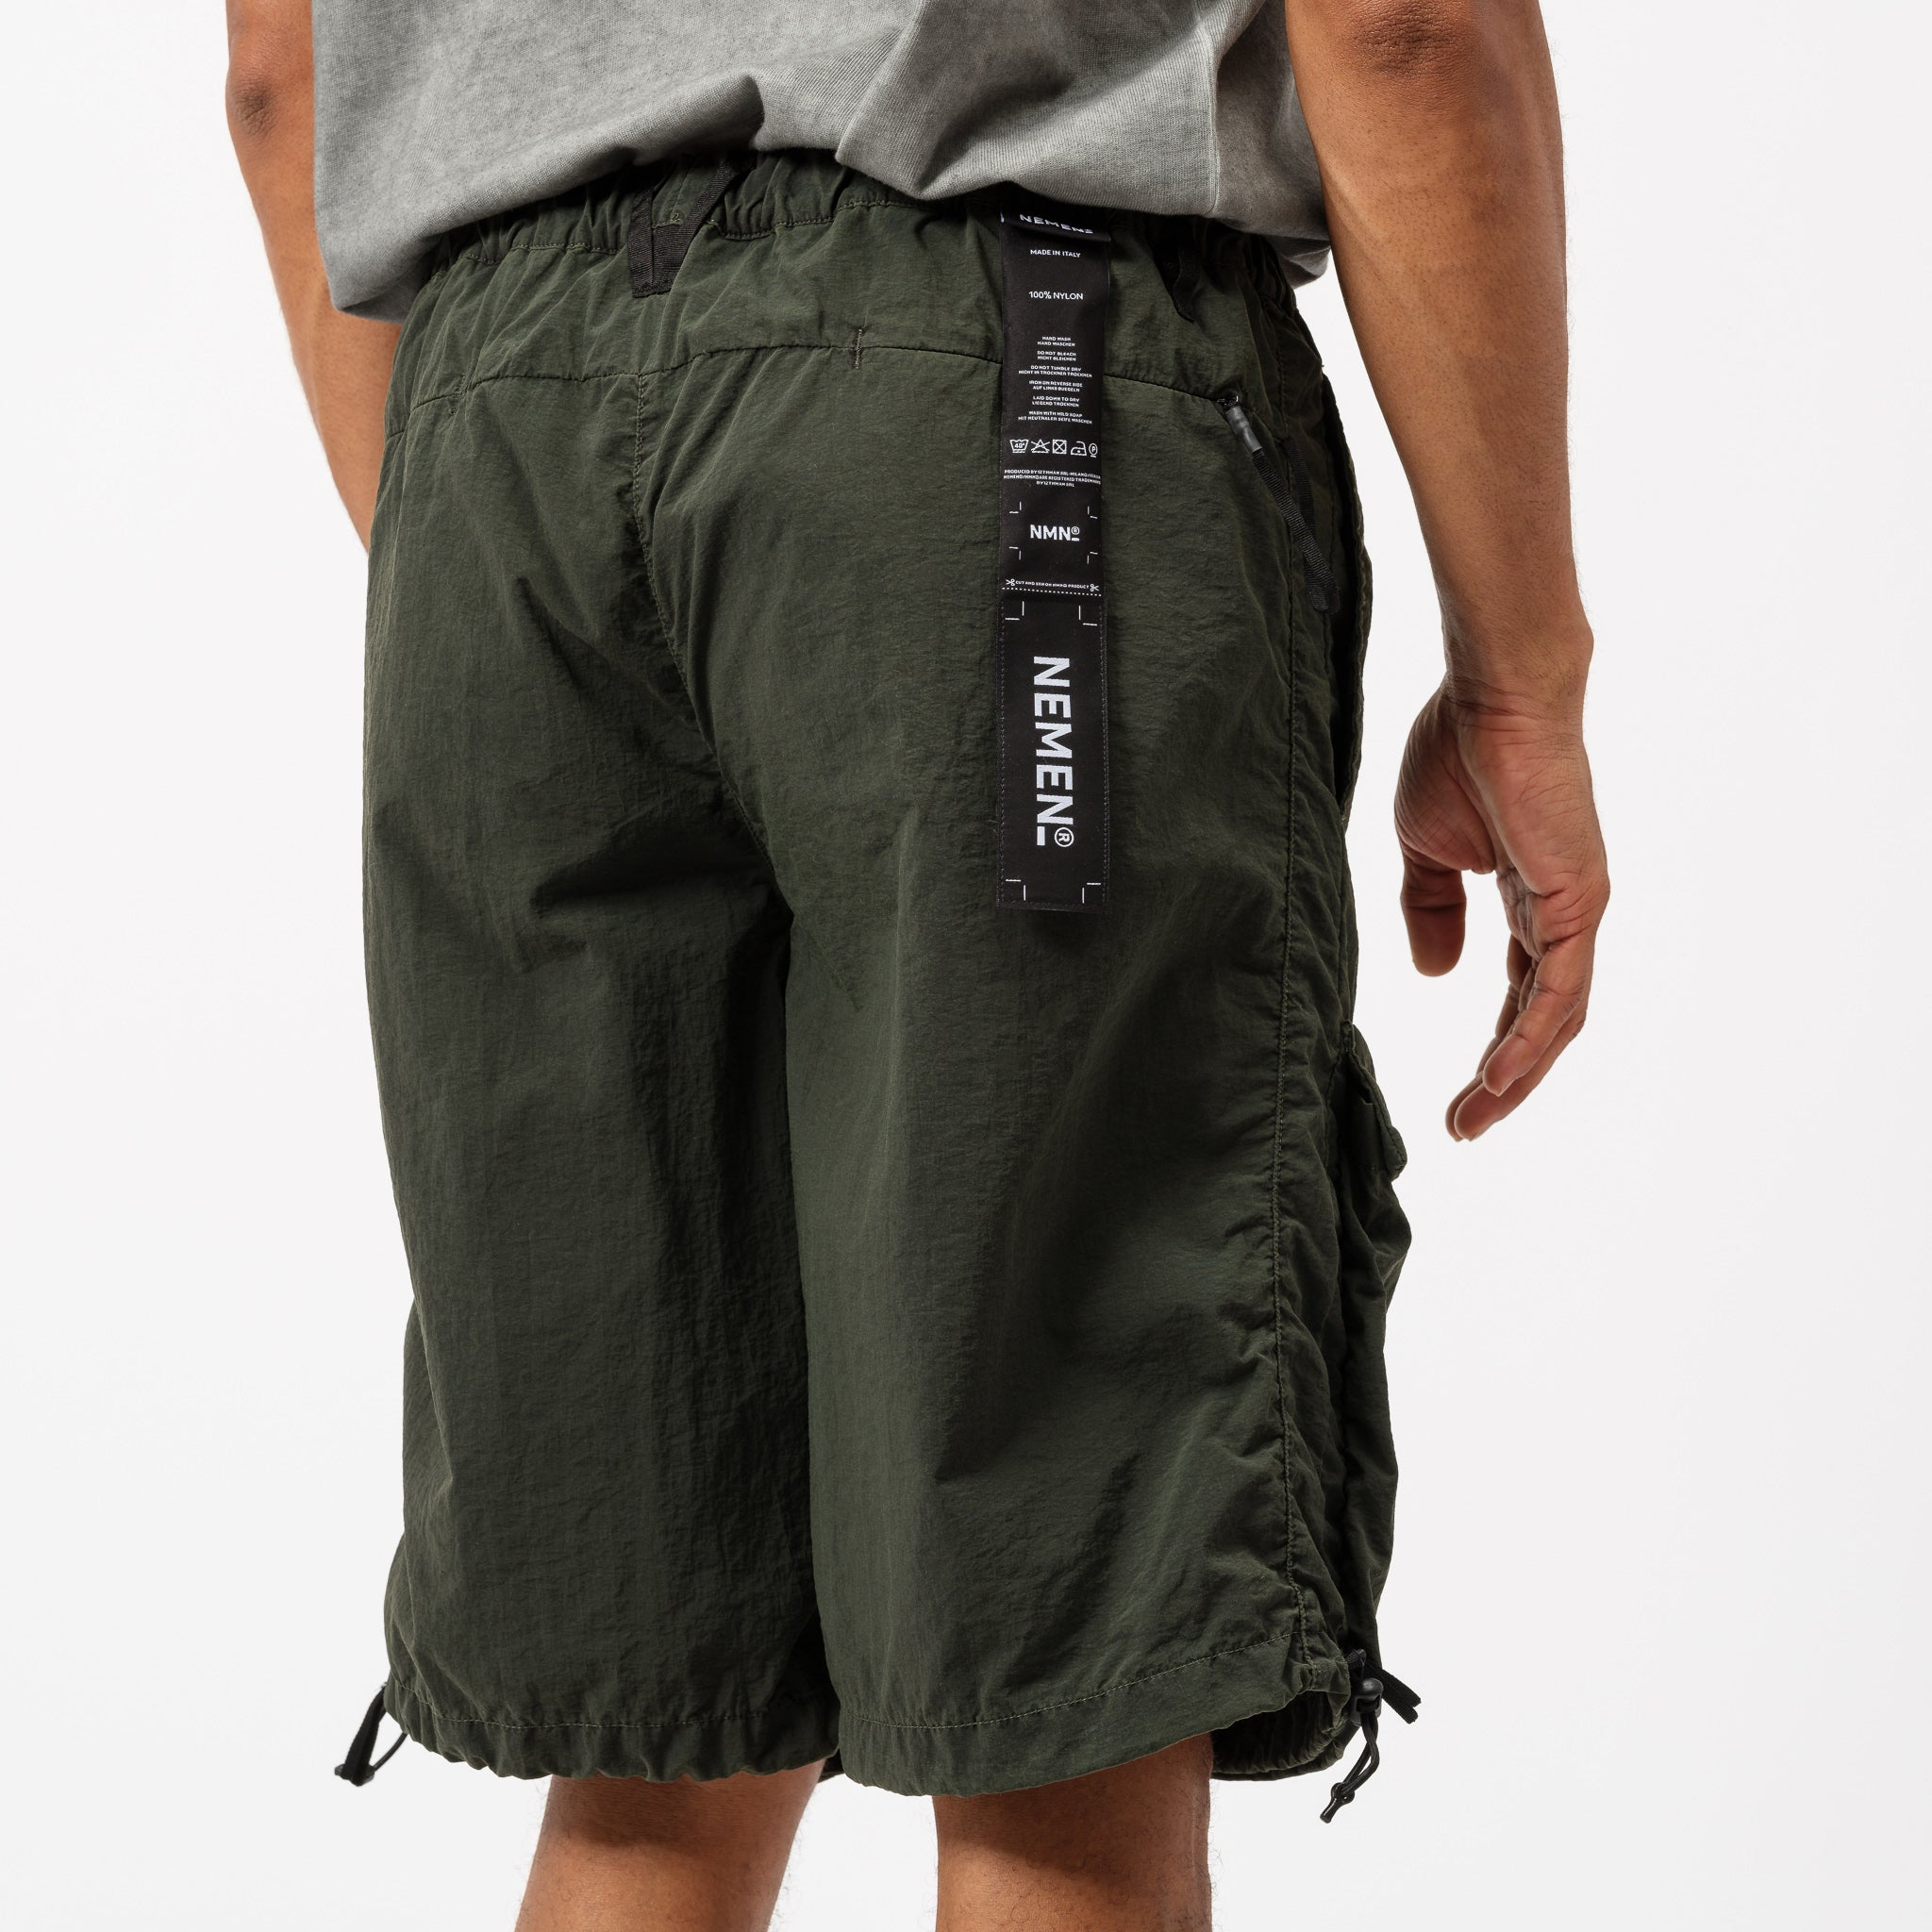 Combat Short in Military Green